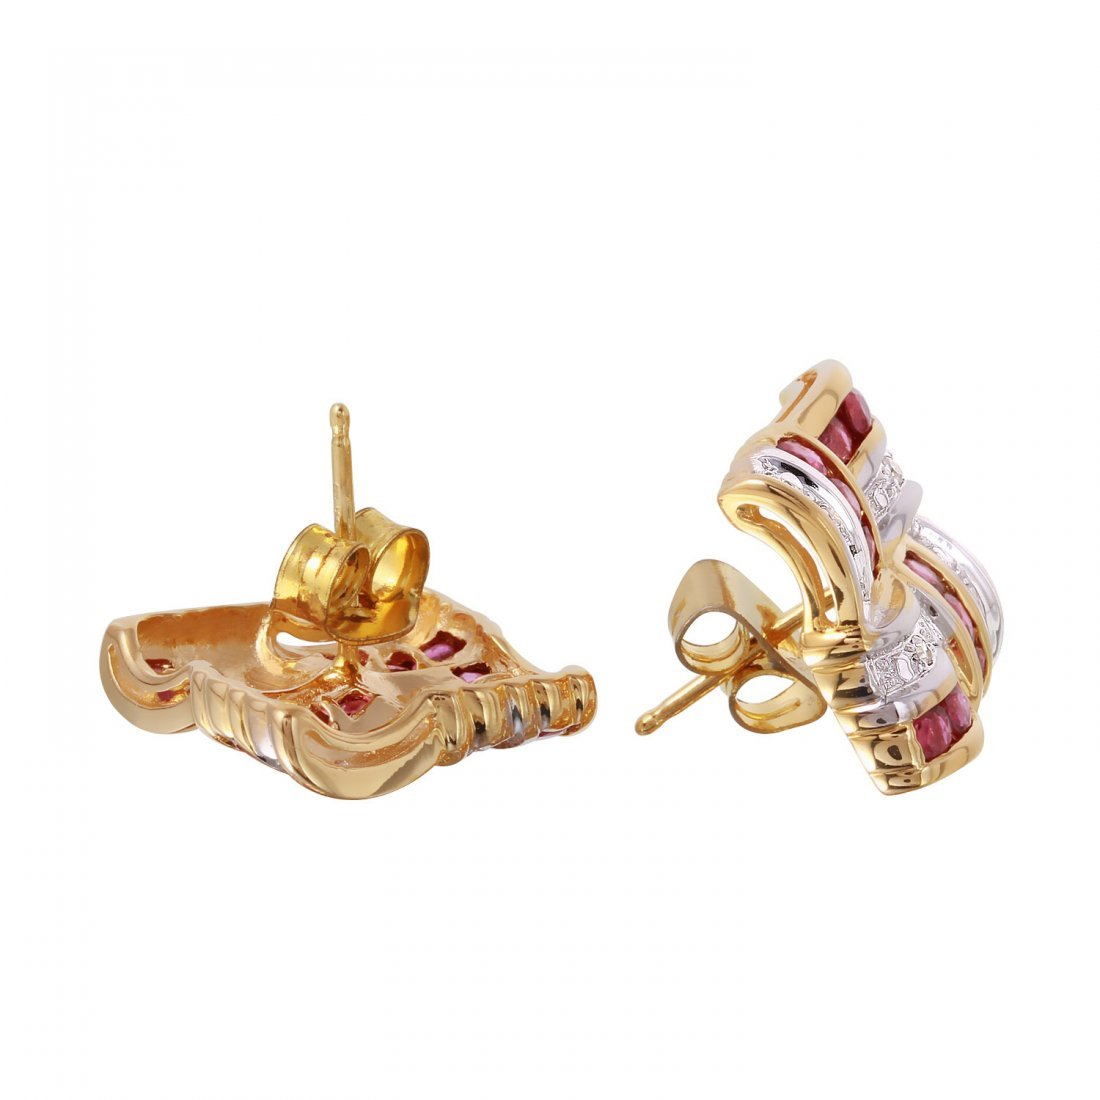 14KT Yellow Gold Diamond and Ruby Earrings - 2